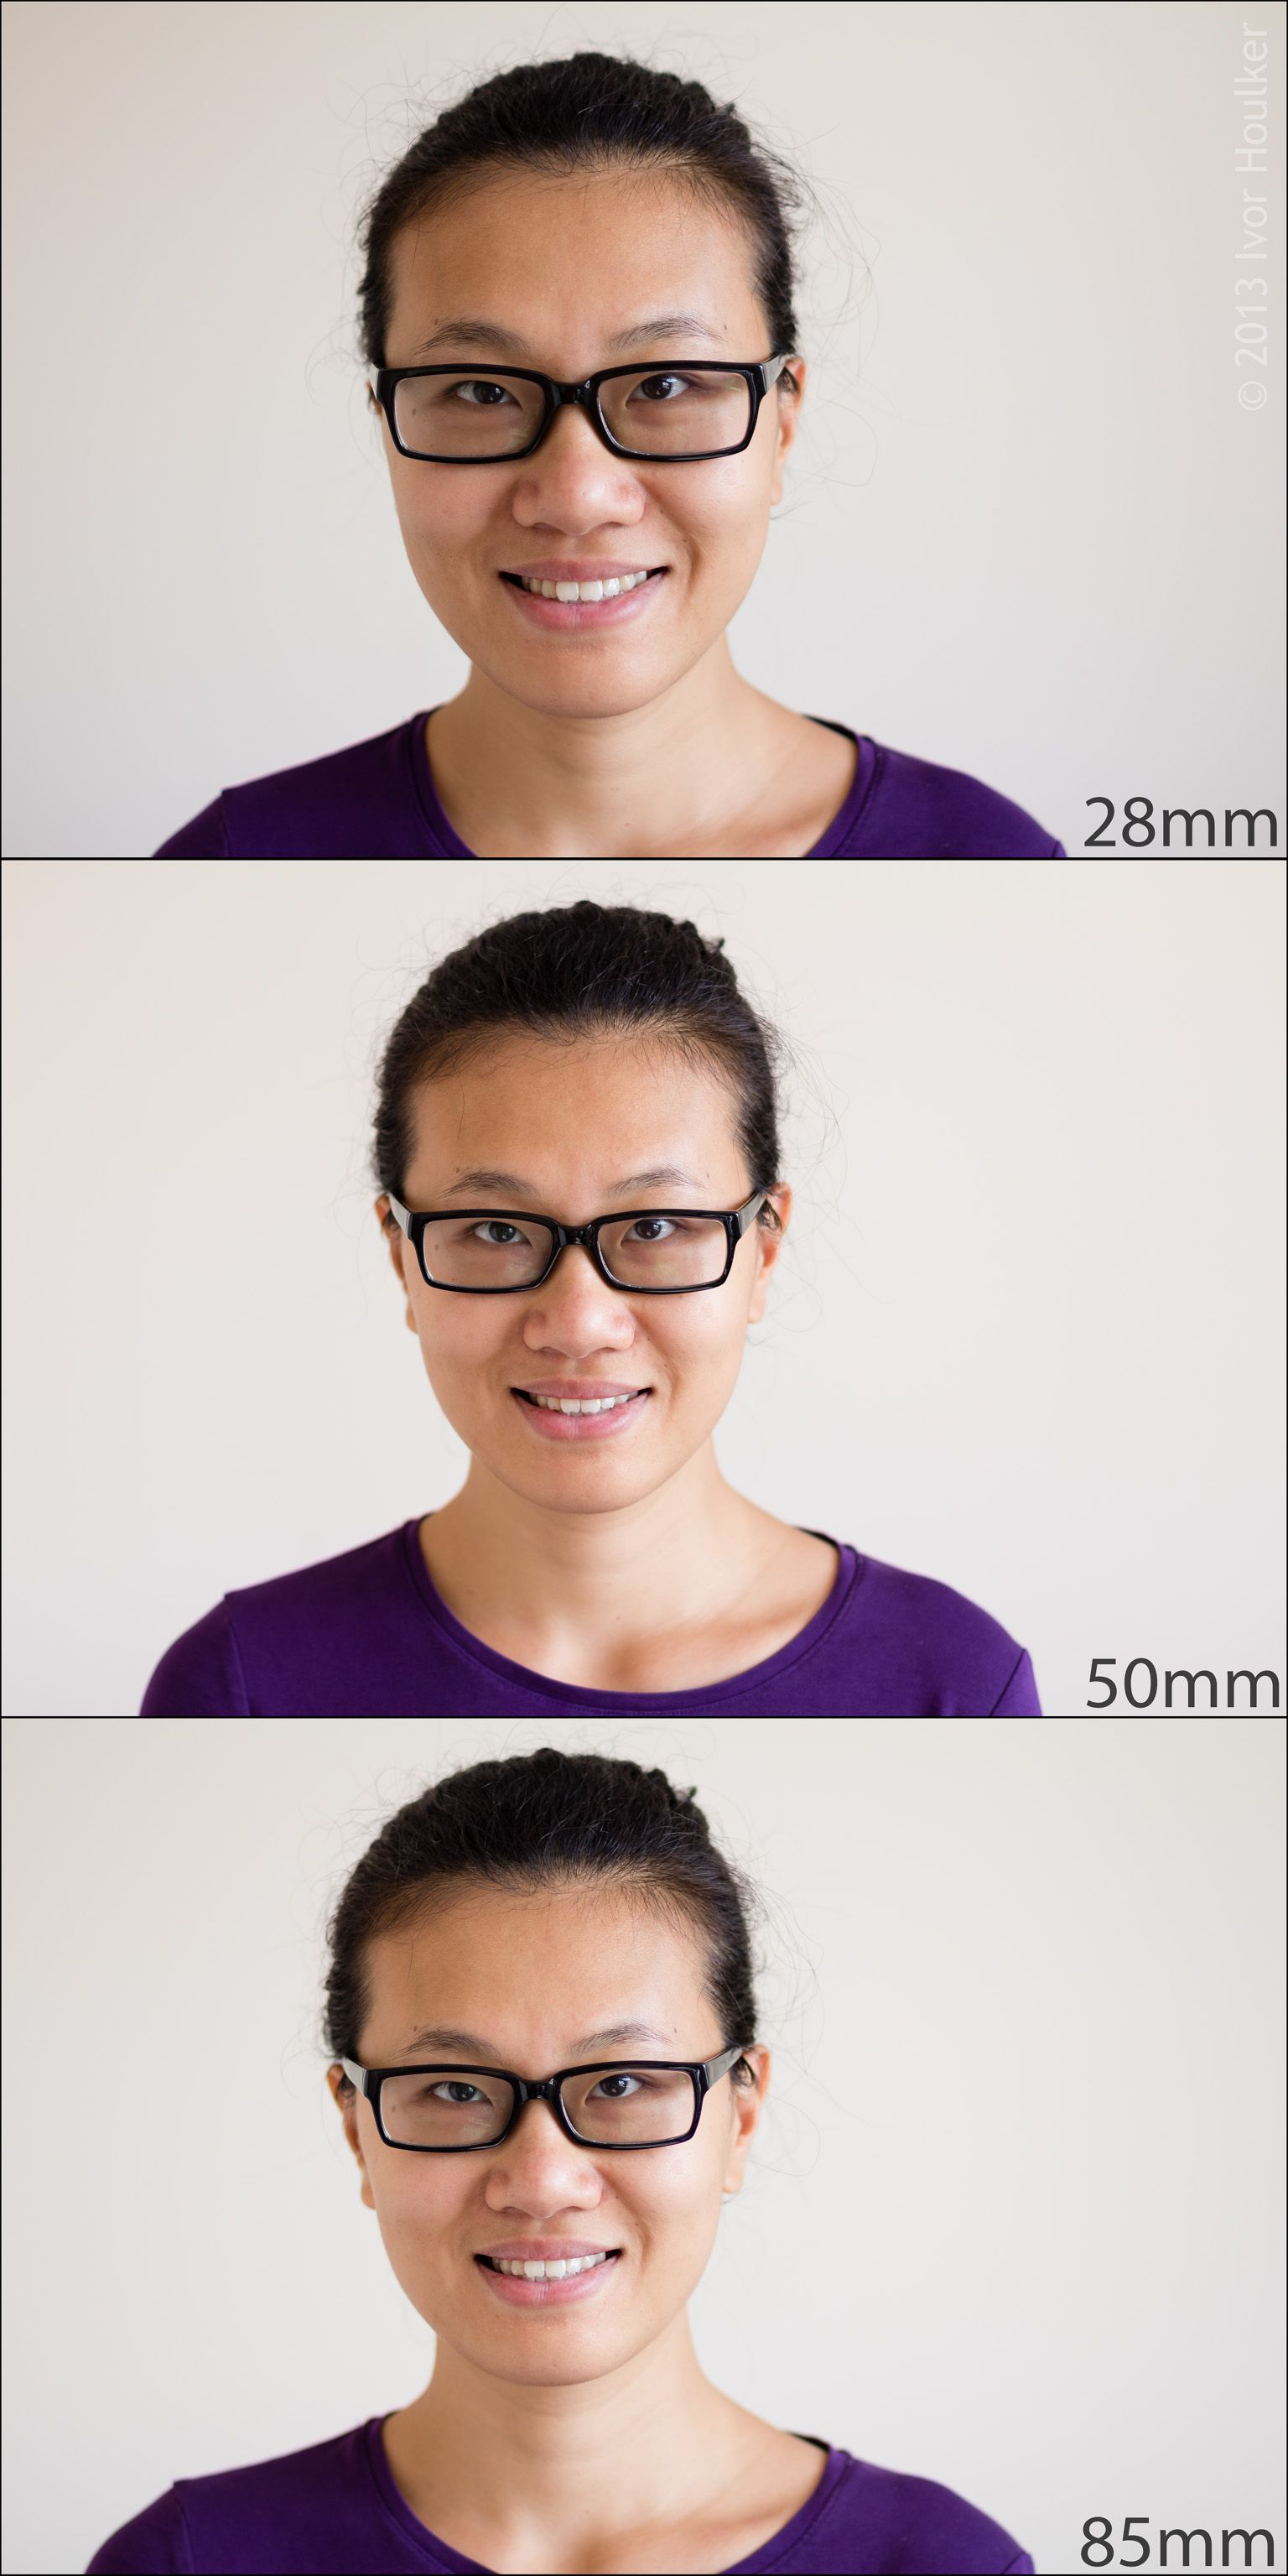 Different focal lengths for portrait photography: http://houlker.co.uk/photography/tutorials/tutorial-focal-lengths-for-portraits/